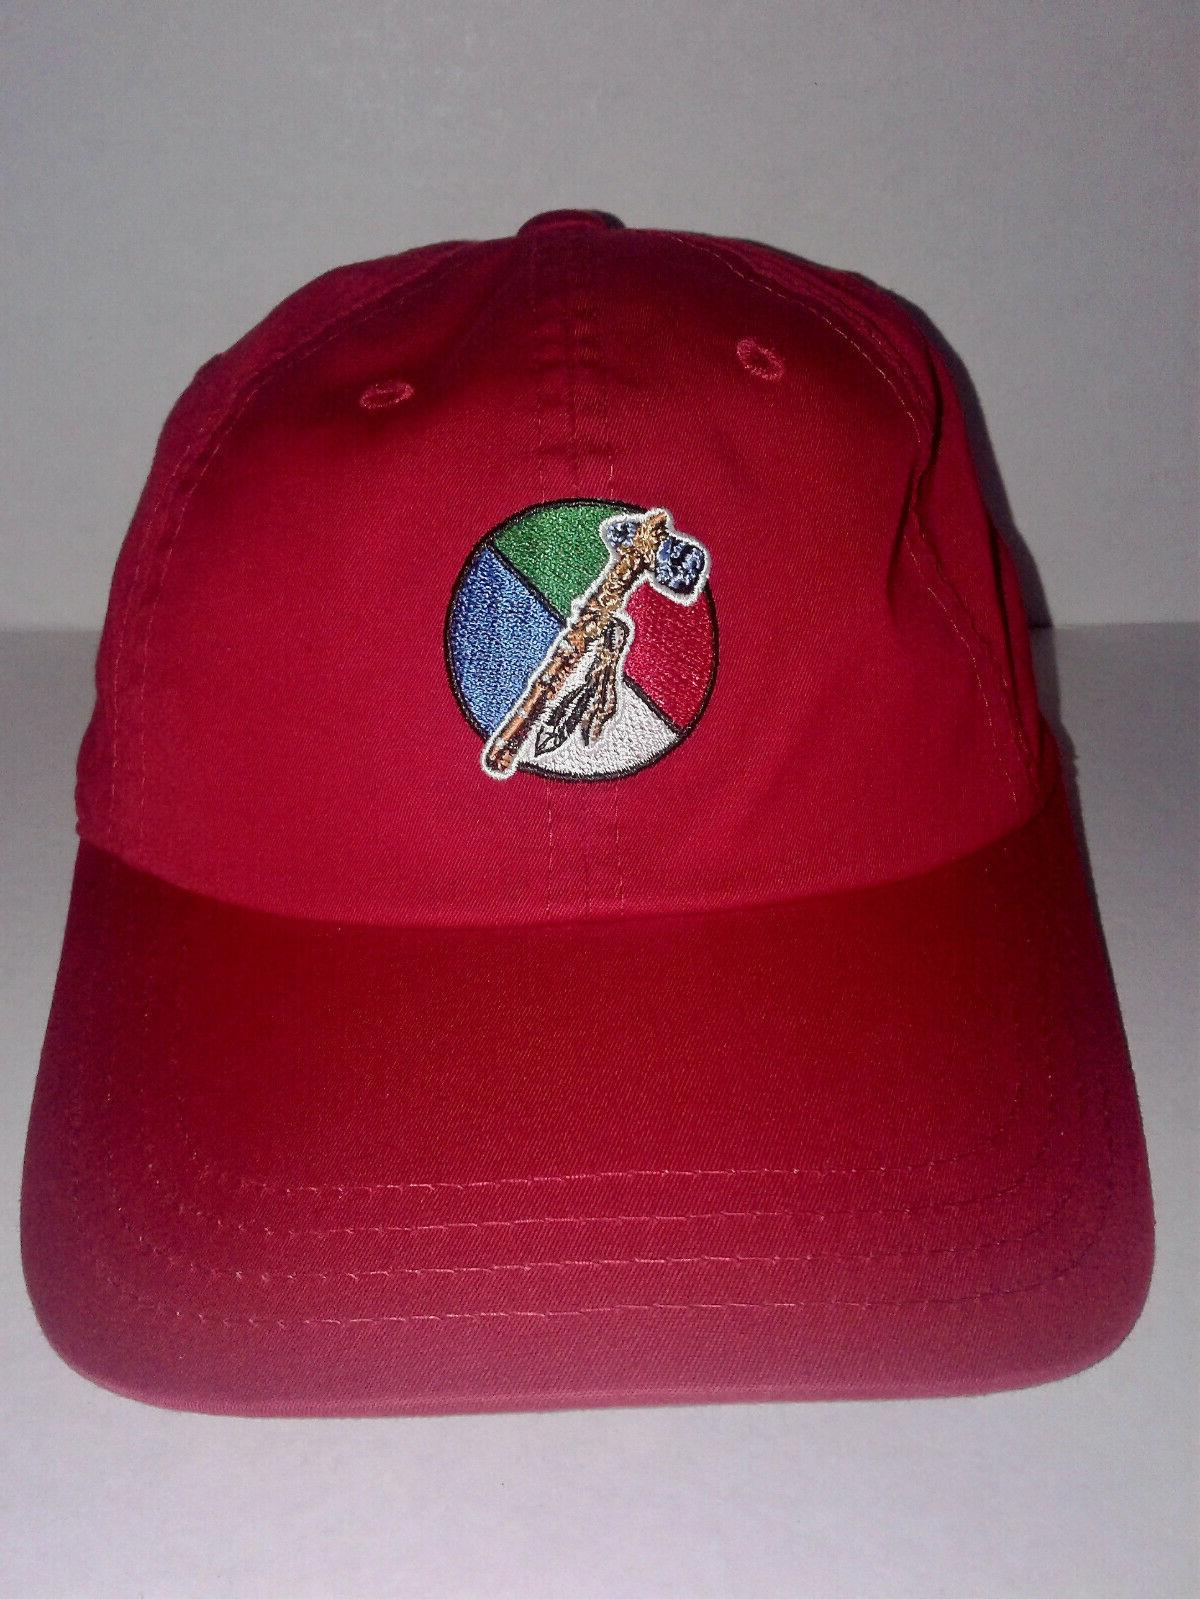 NEW! CHEROKEE GOLF COURSE RED HAT